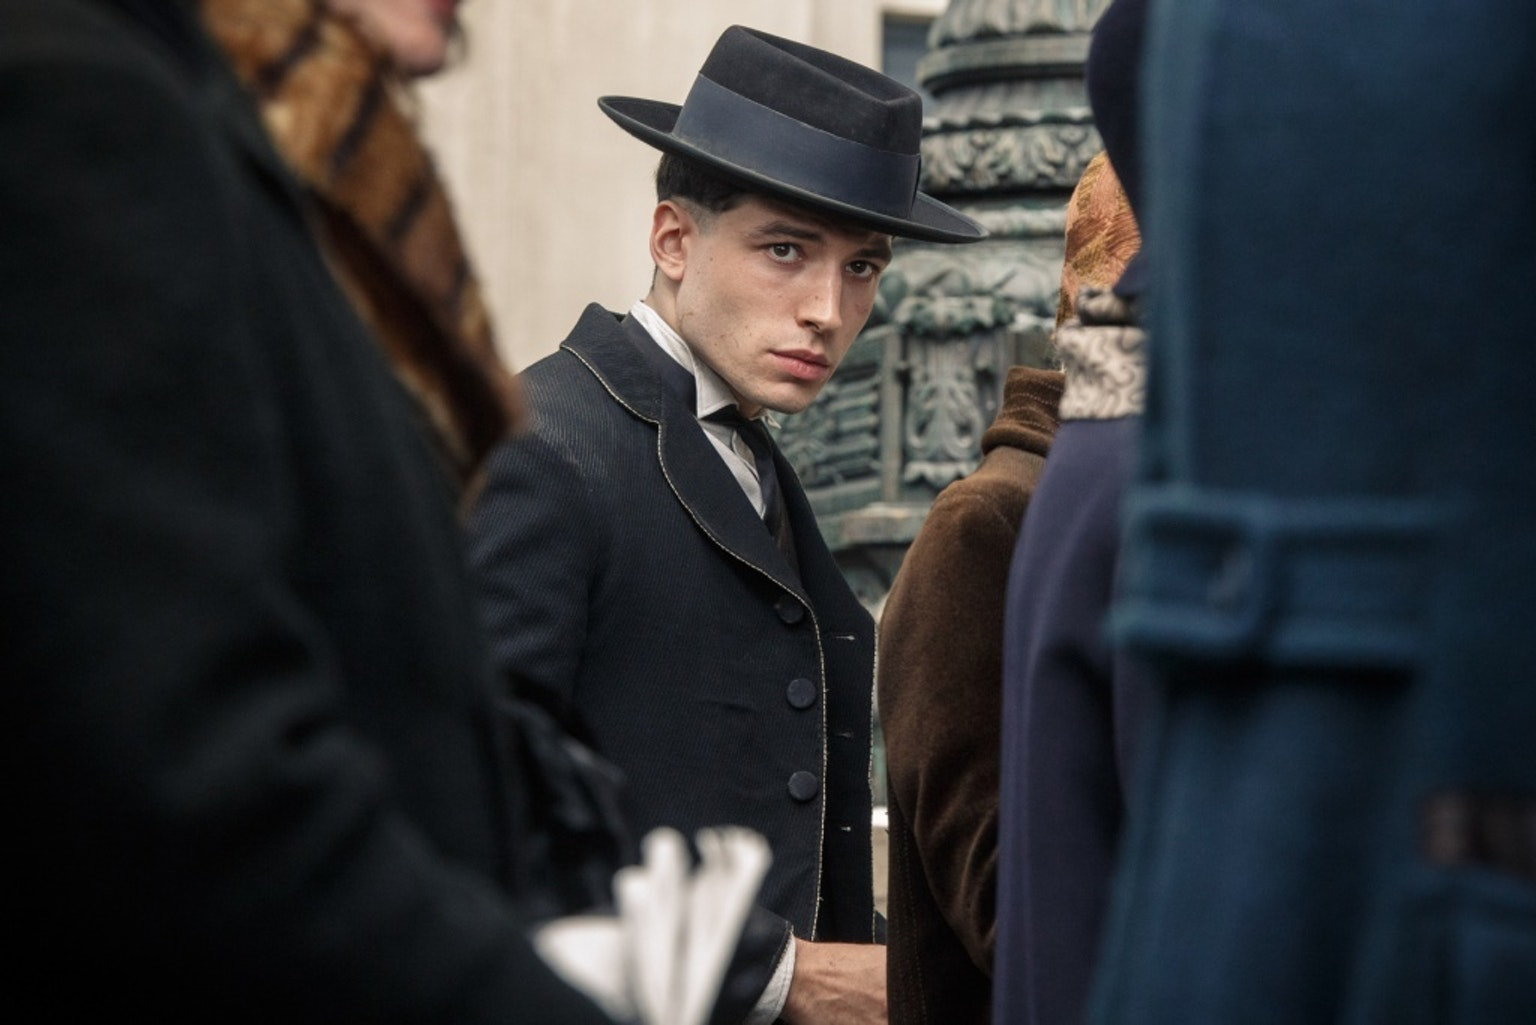 Credence in 'Fantastic Beasts and Where to Find Them'